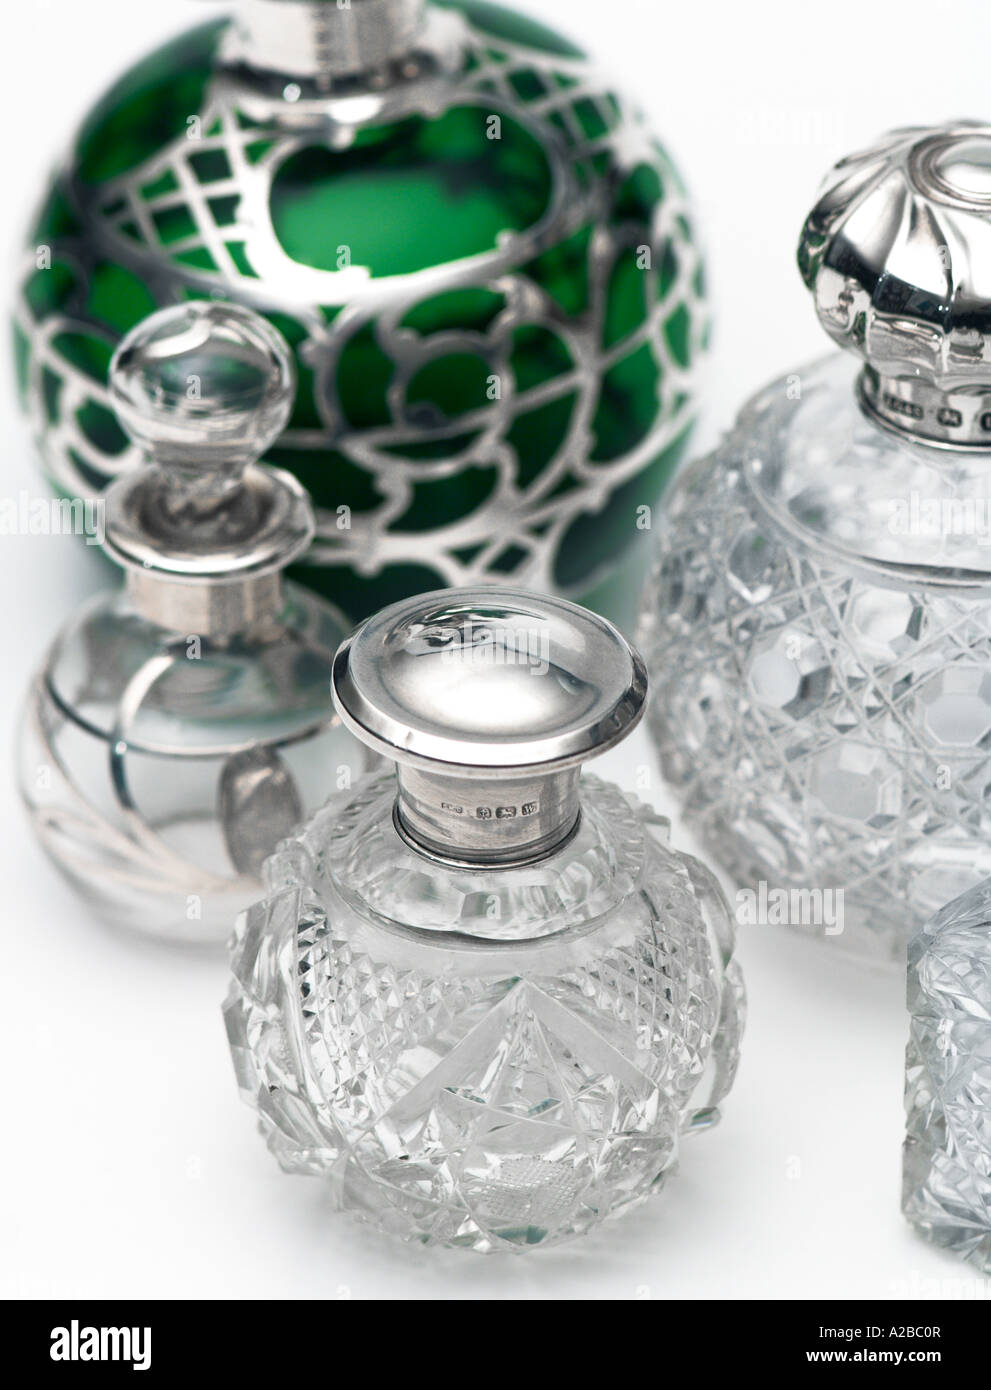 Old Vintage Perfume Bottle Collection early 20th century - Stock Image